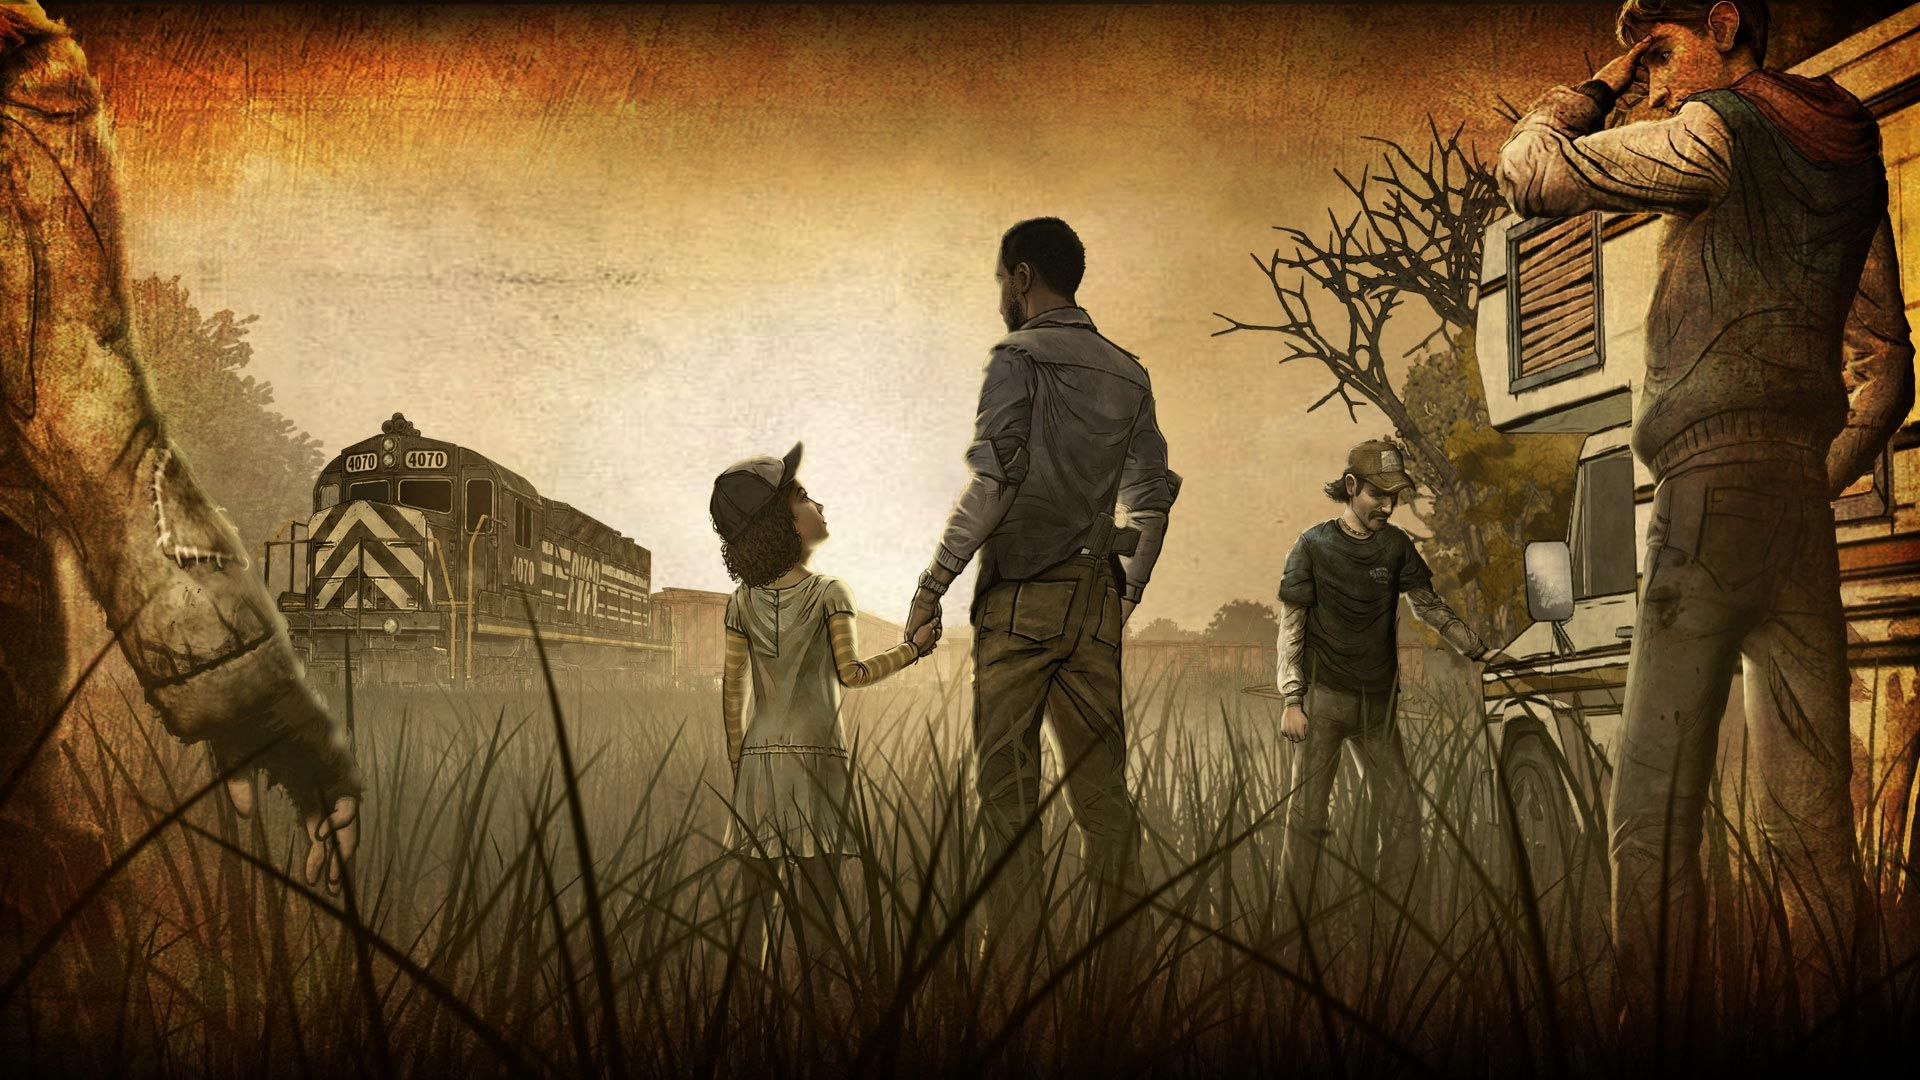 Twd game wallpaper zombie infestation zone pinterest twd game wallpaper voltagebd Image collections